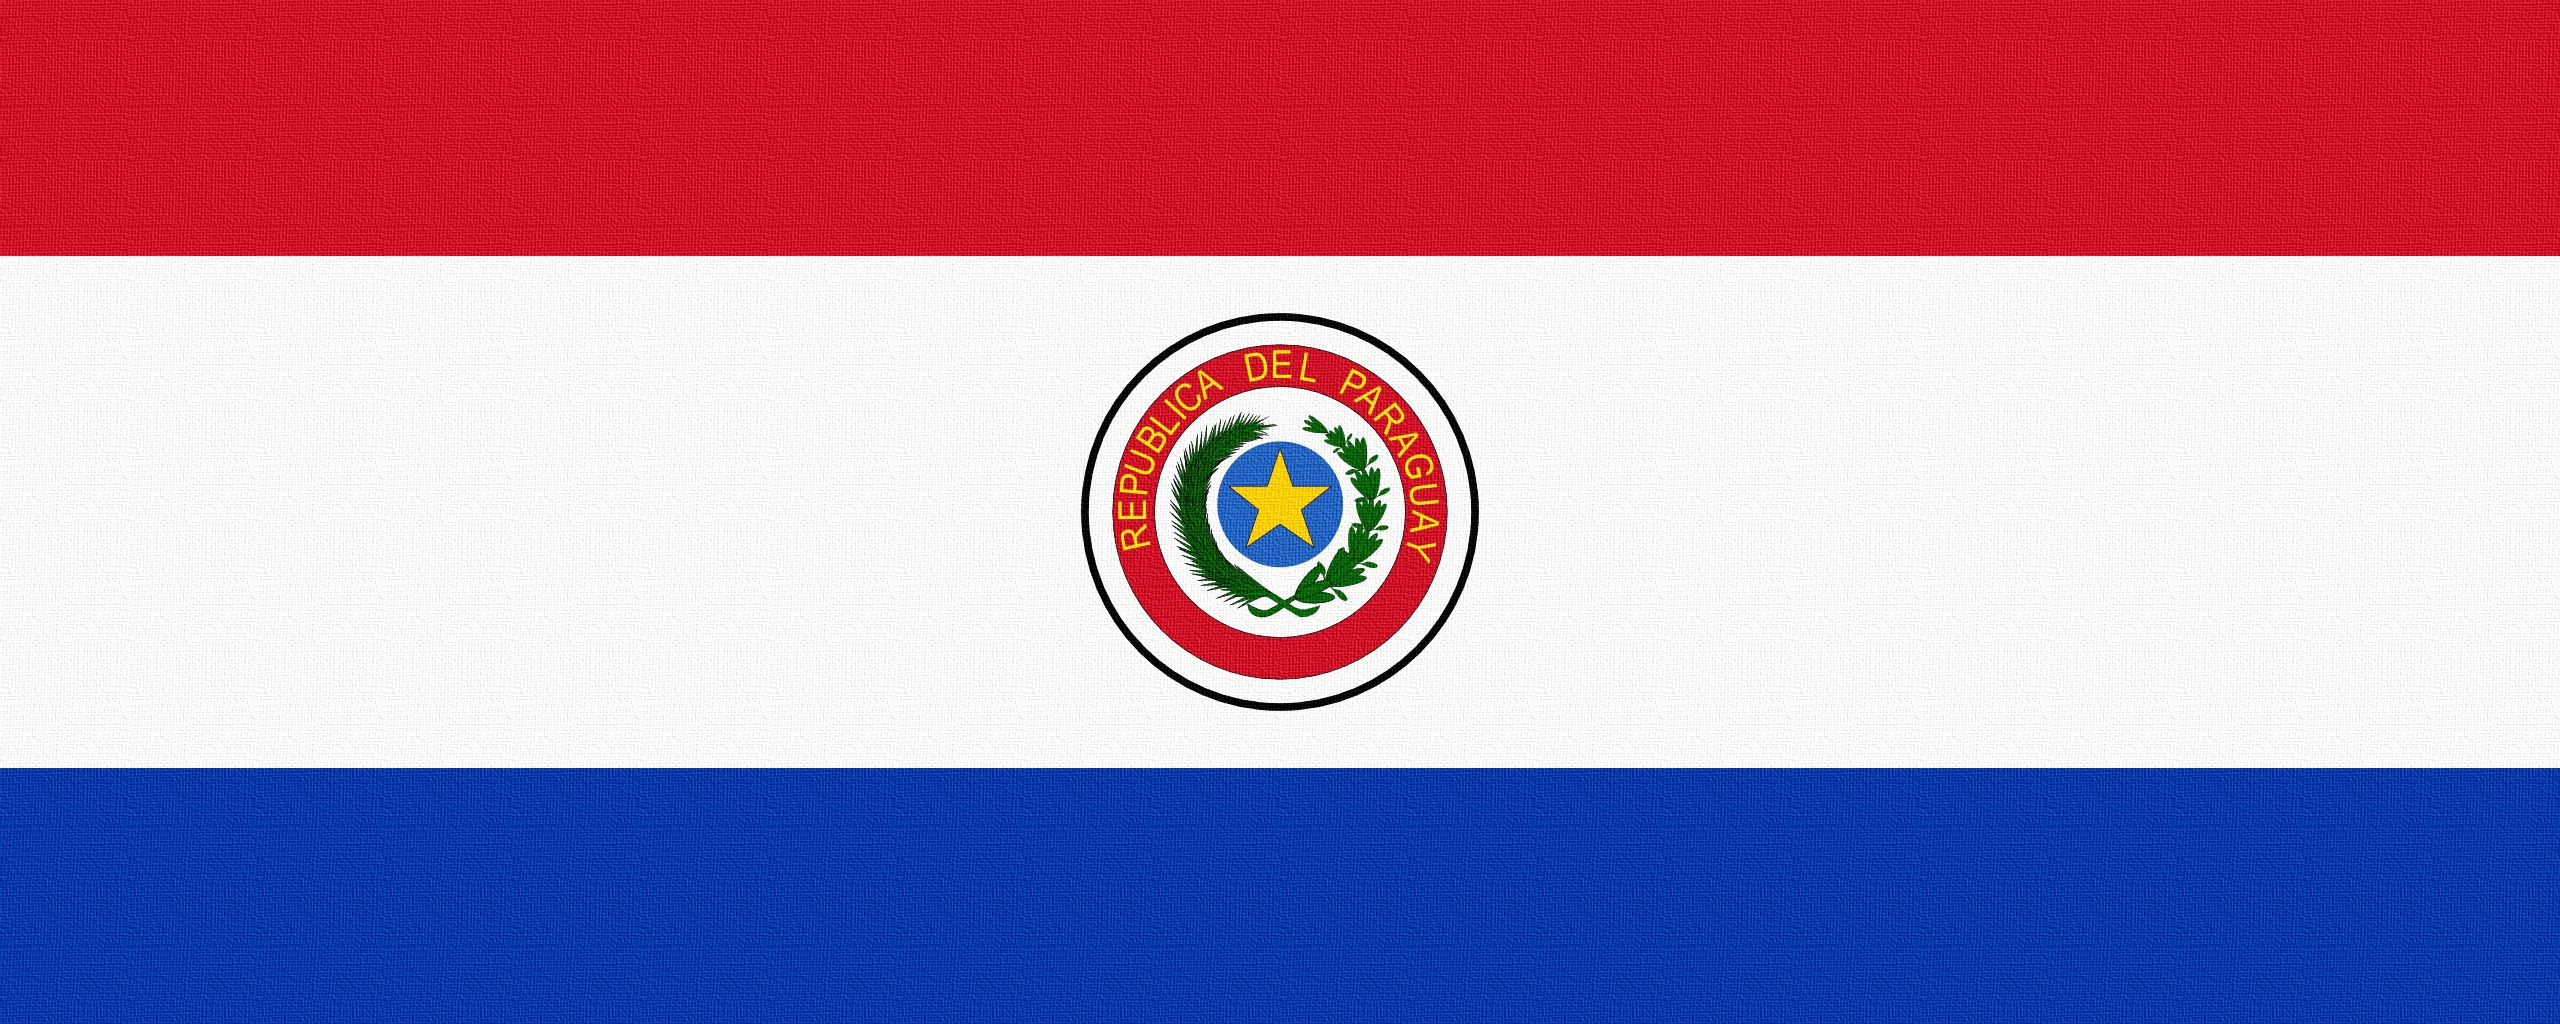 Download wallpaper 2560x1024 paraguay, flag, line ultrawide monitor ...